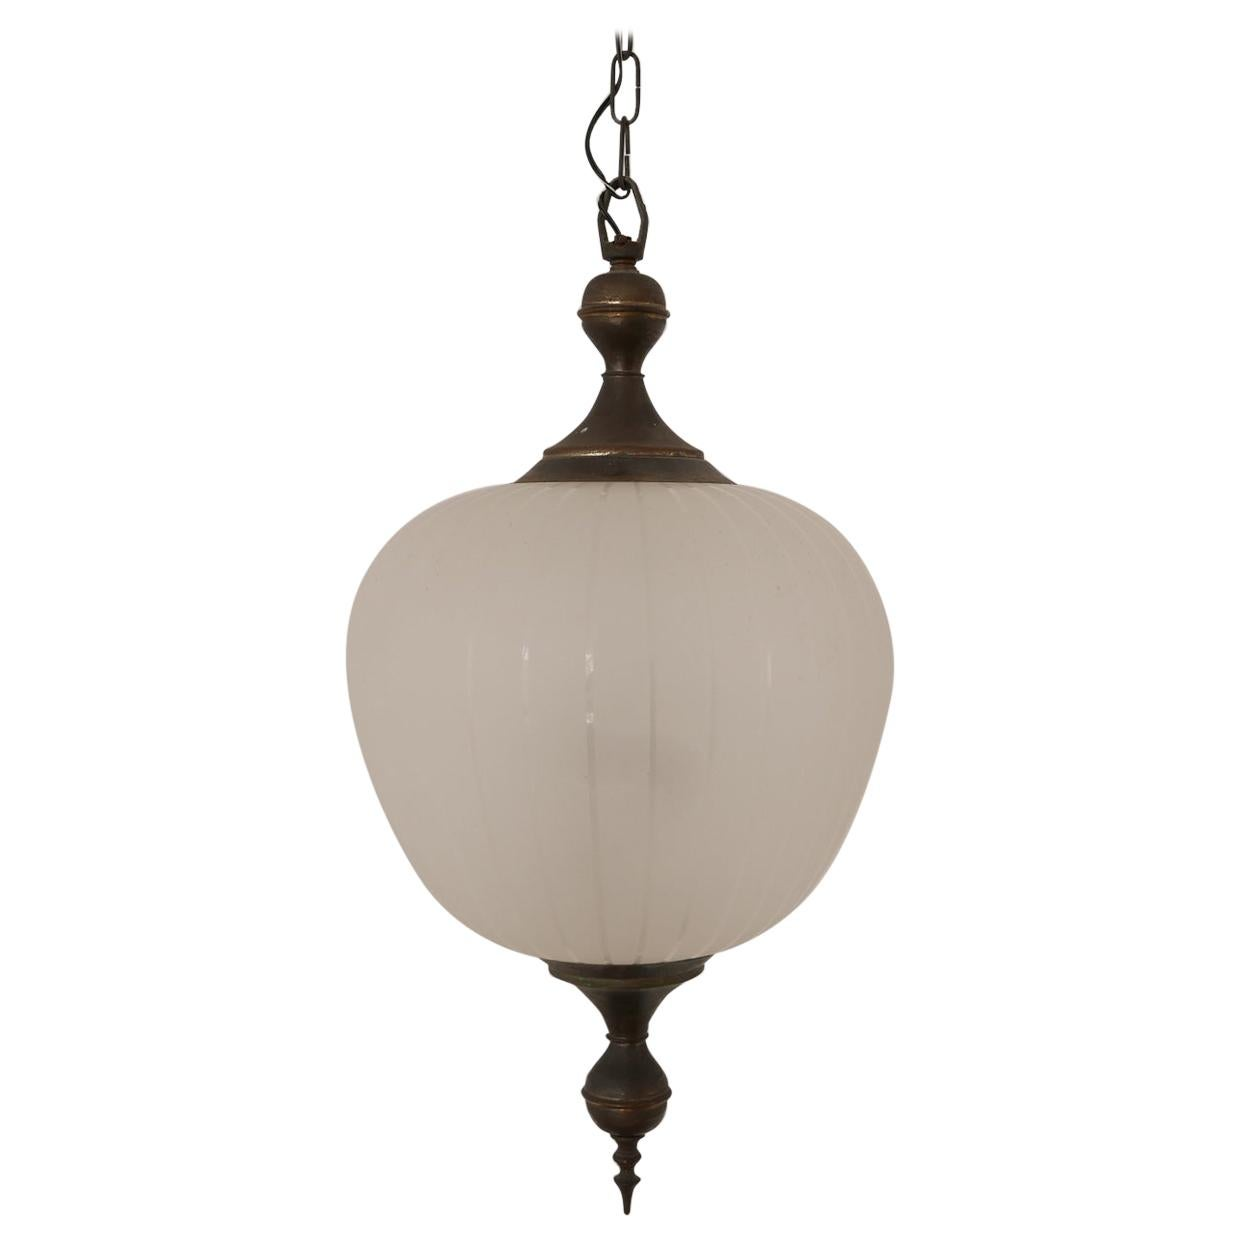 Italian Midcentury Etched Glass Pendant Light